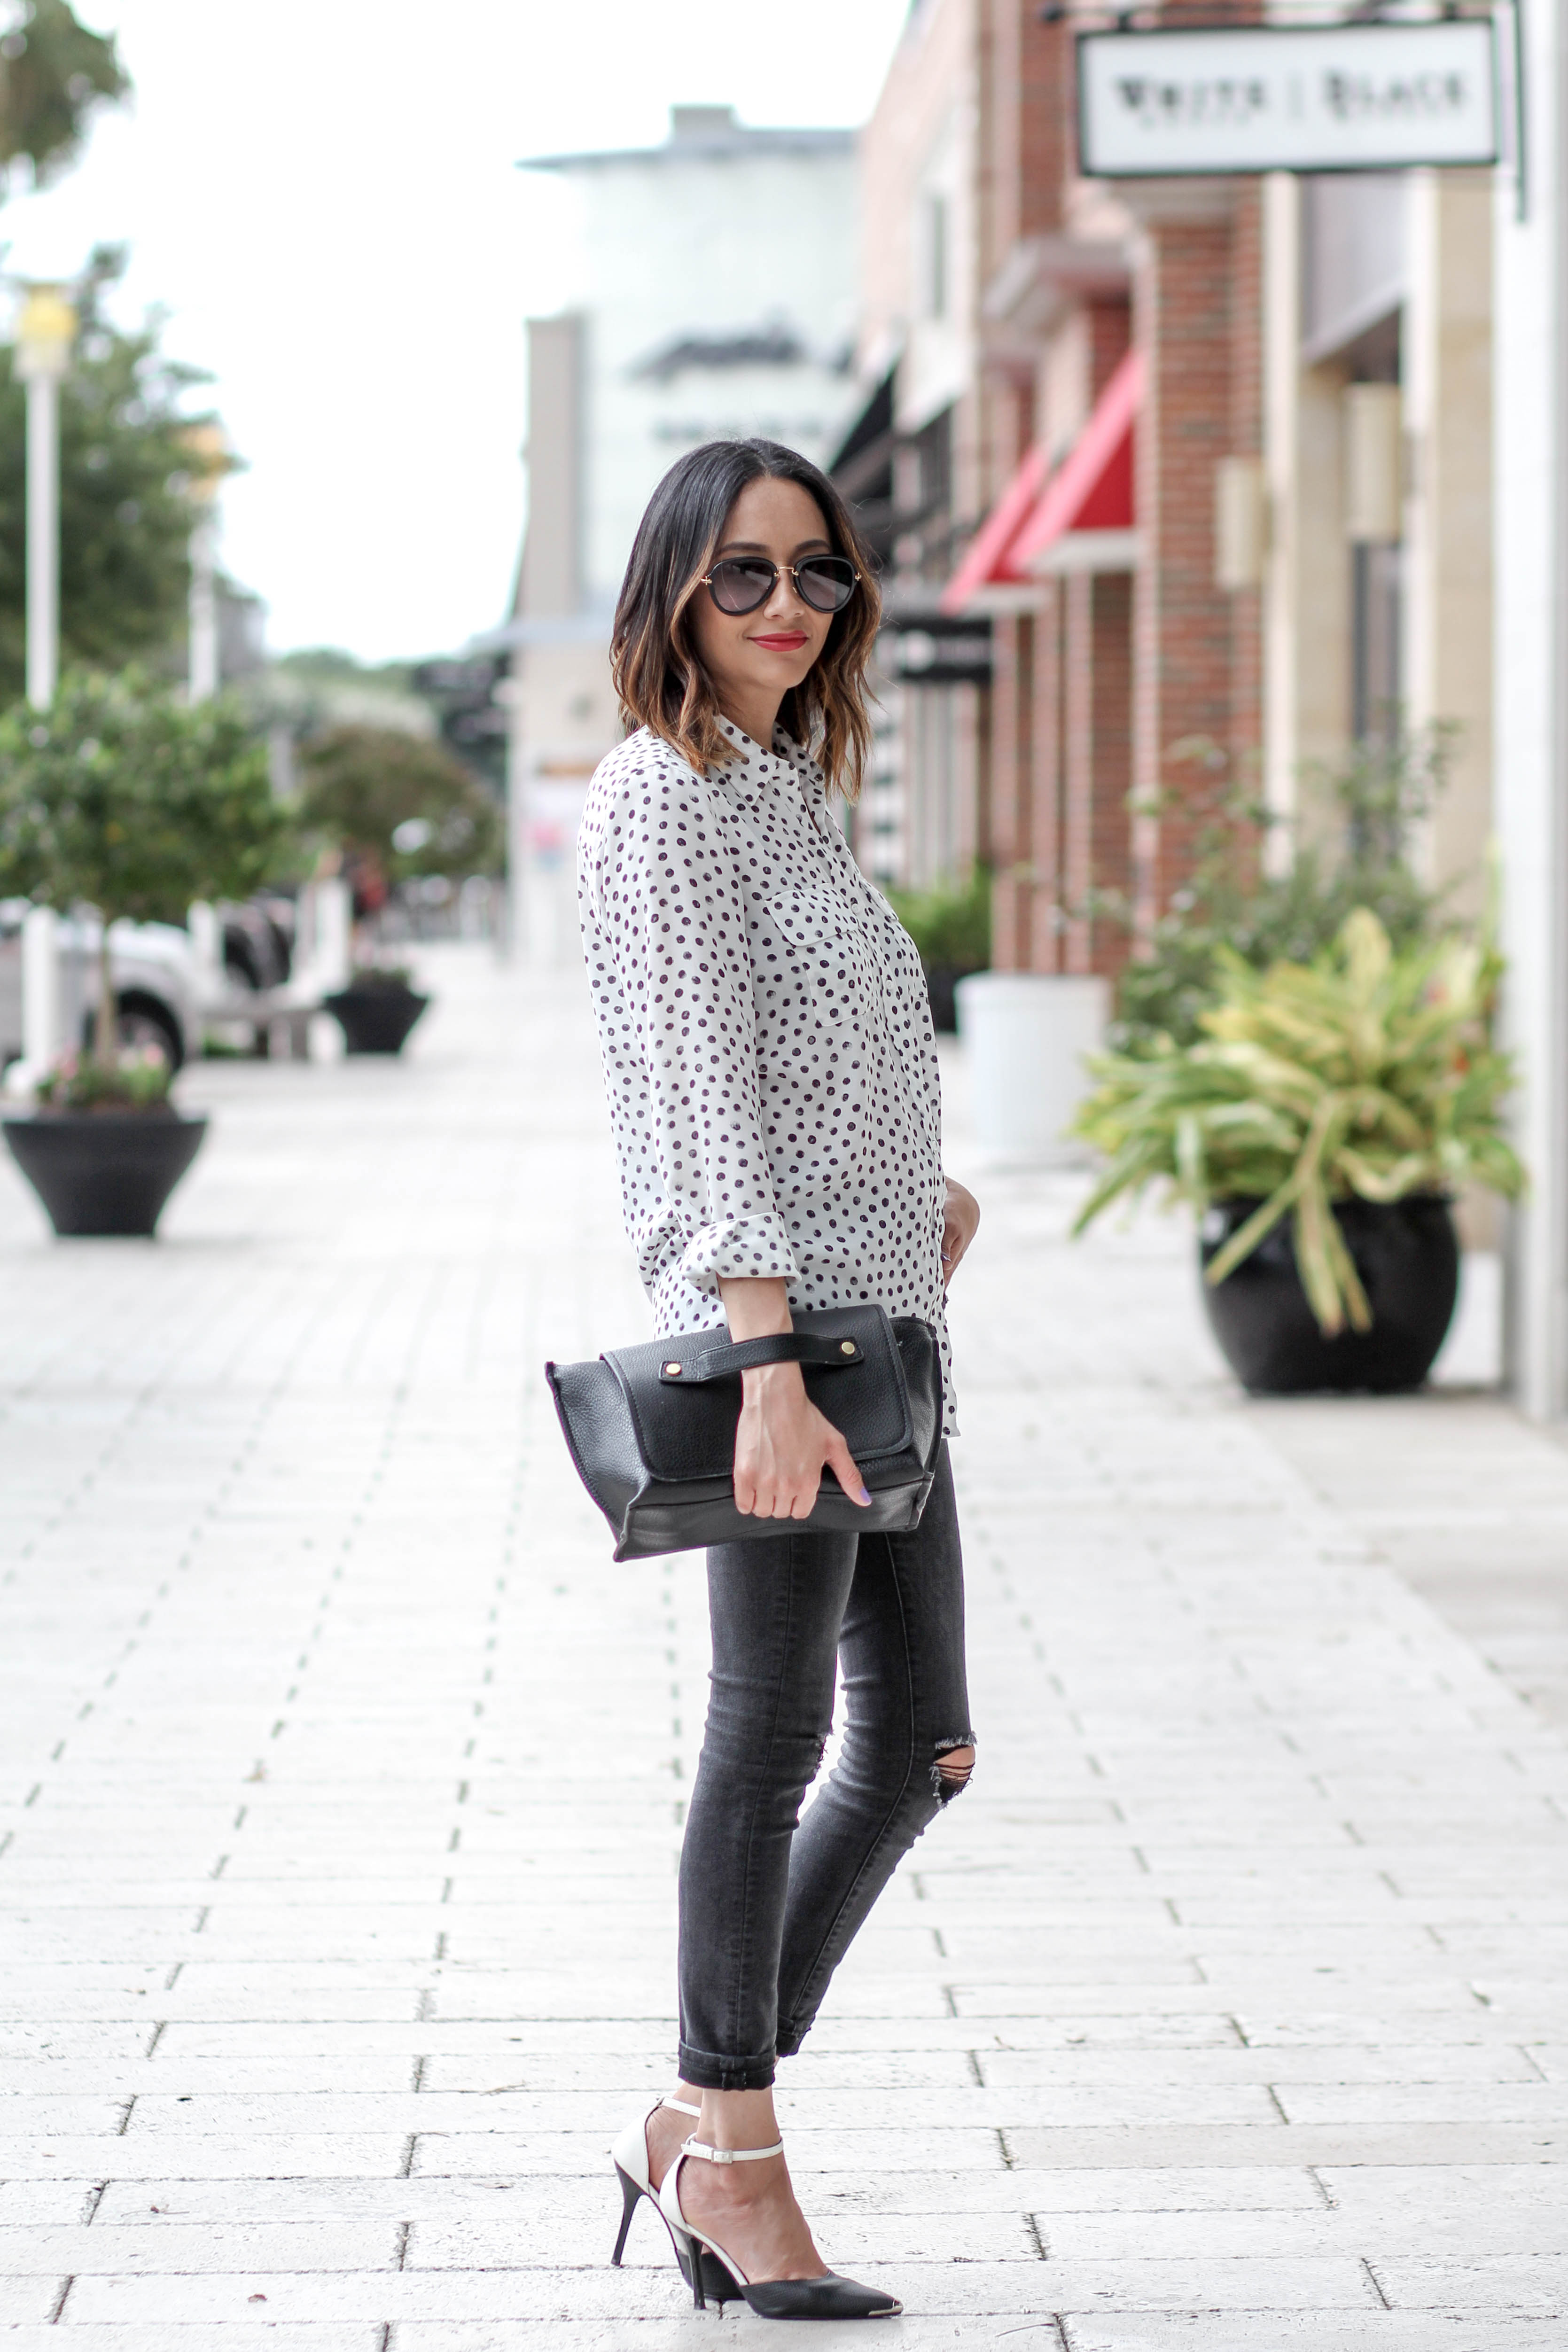 Polka Dotted Top and Black Skinny Jeans | Easy Casual Look